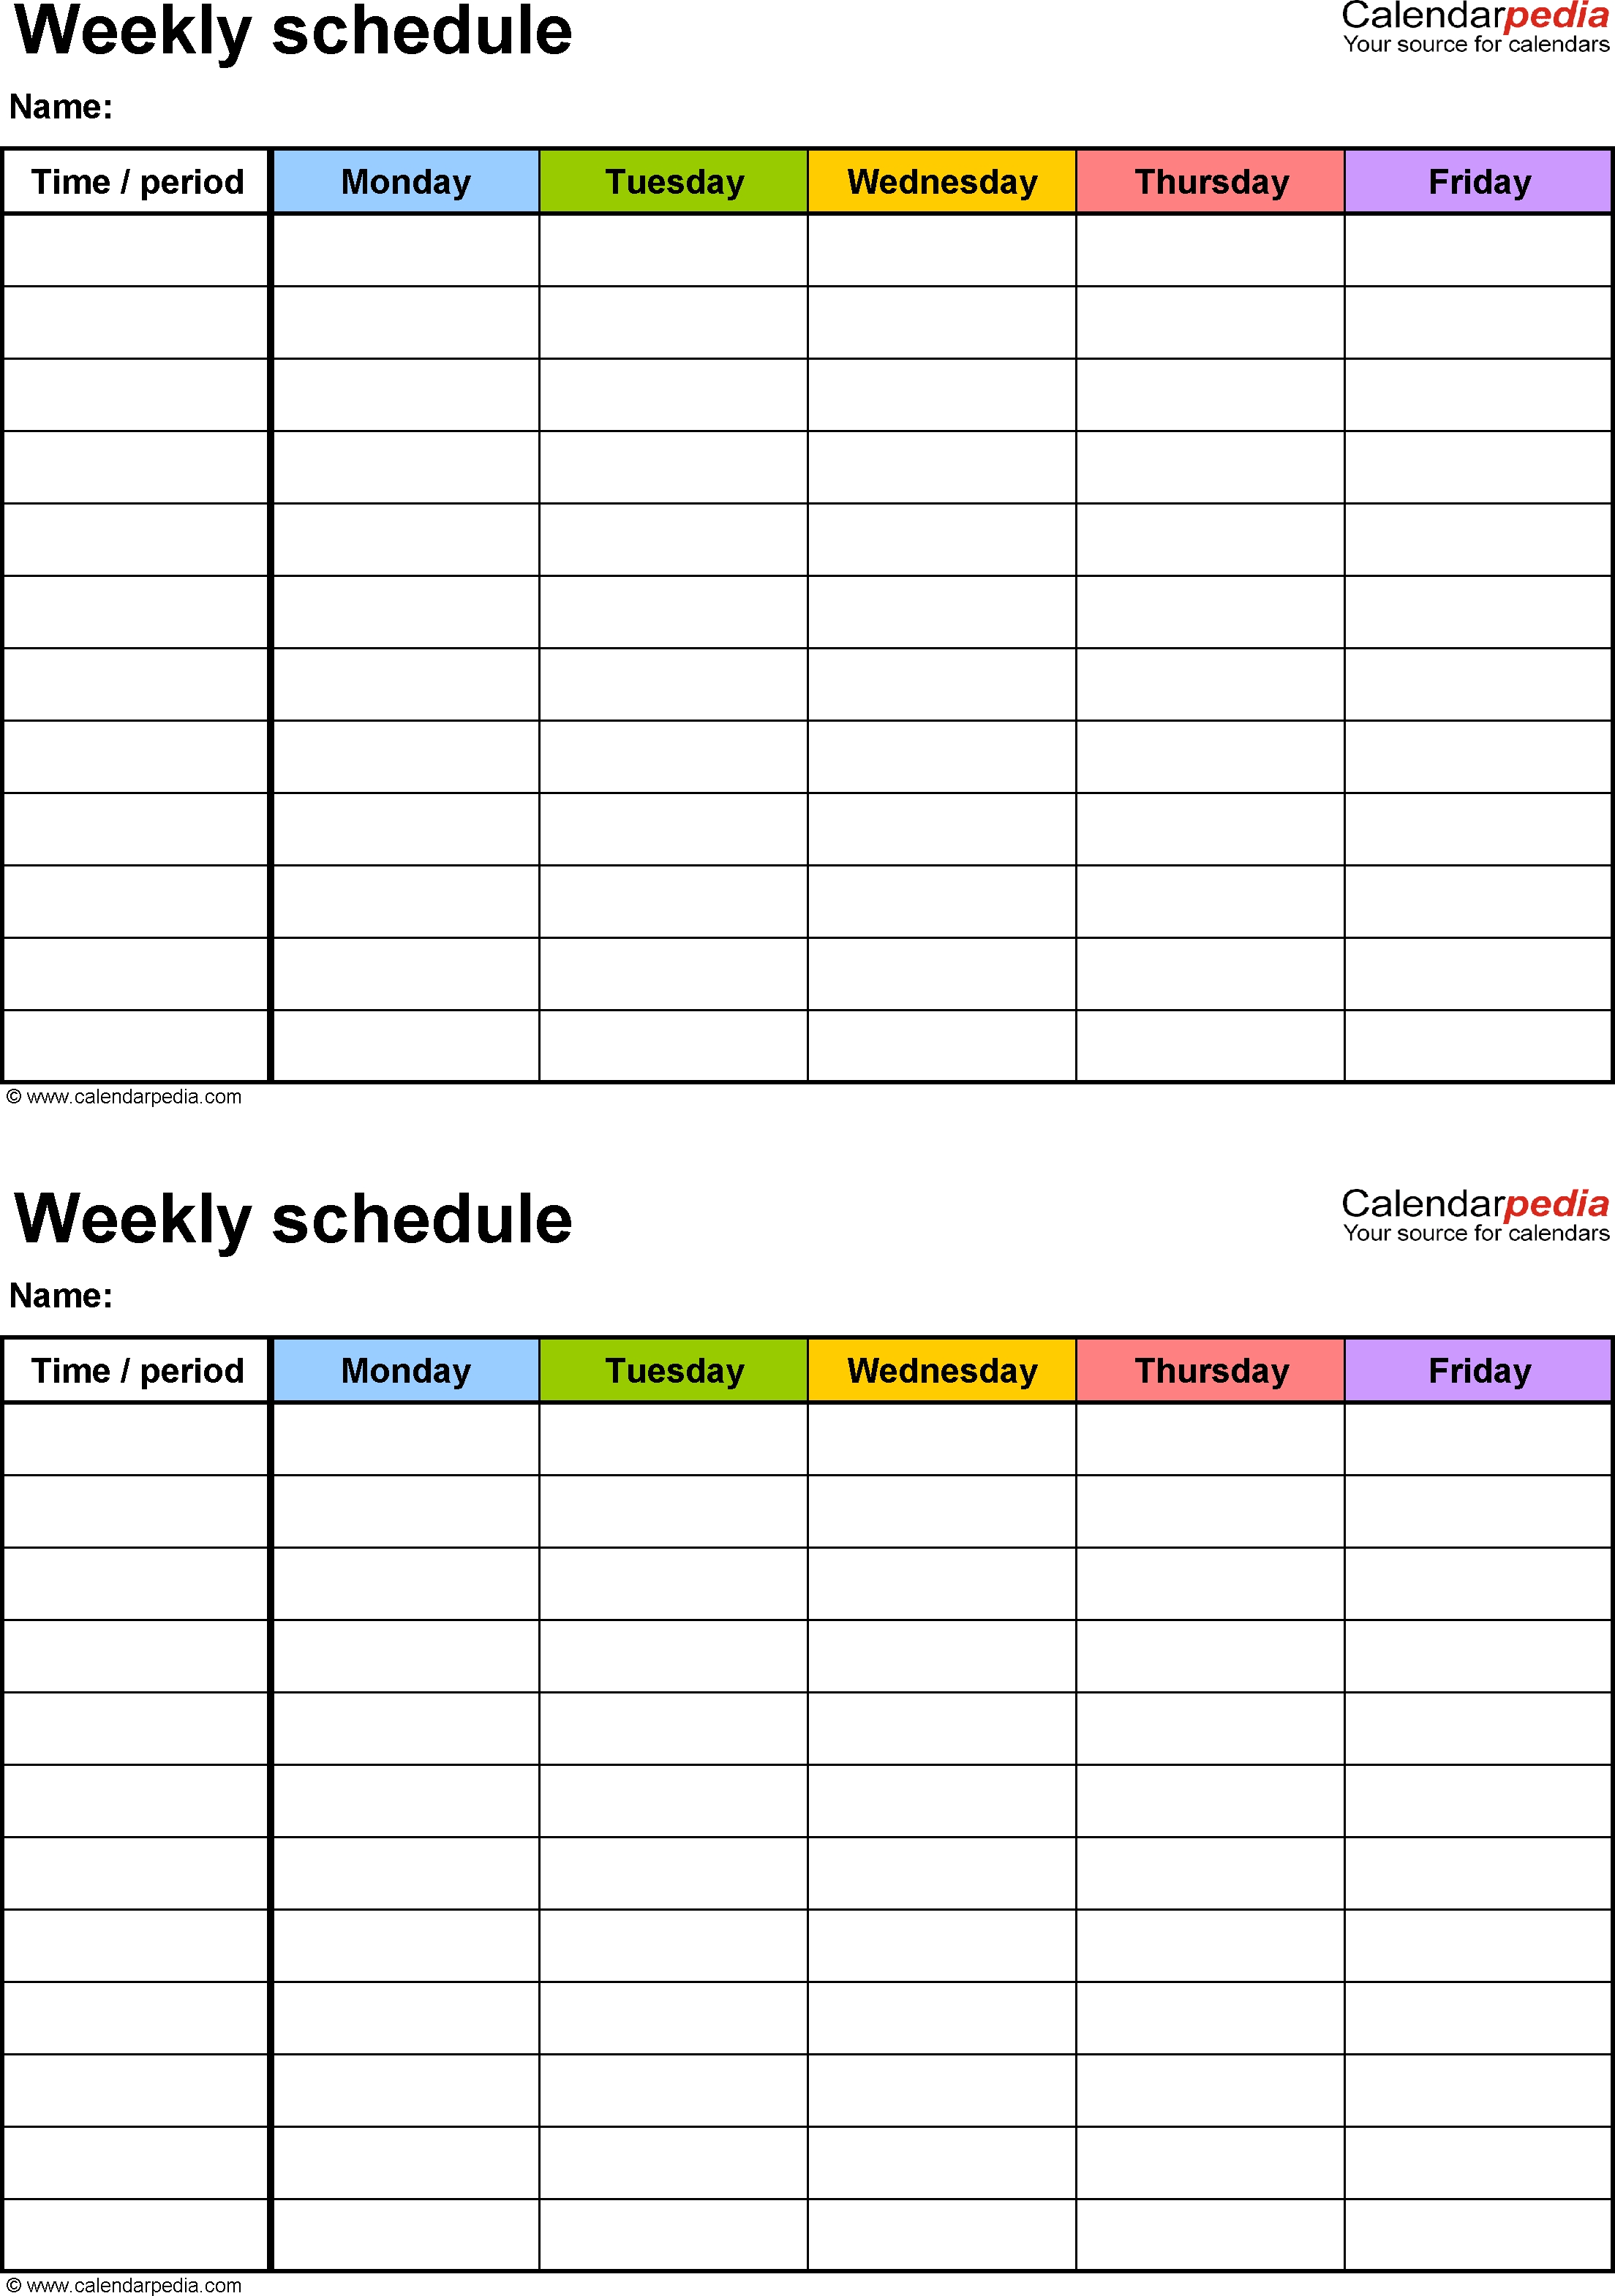 Free Weekly Schedule Templates For Excel - 18 Templates regarding Two Week Monday To Friday Calendars